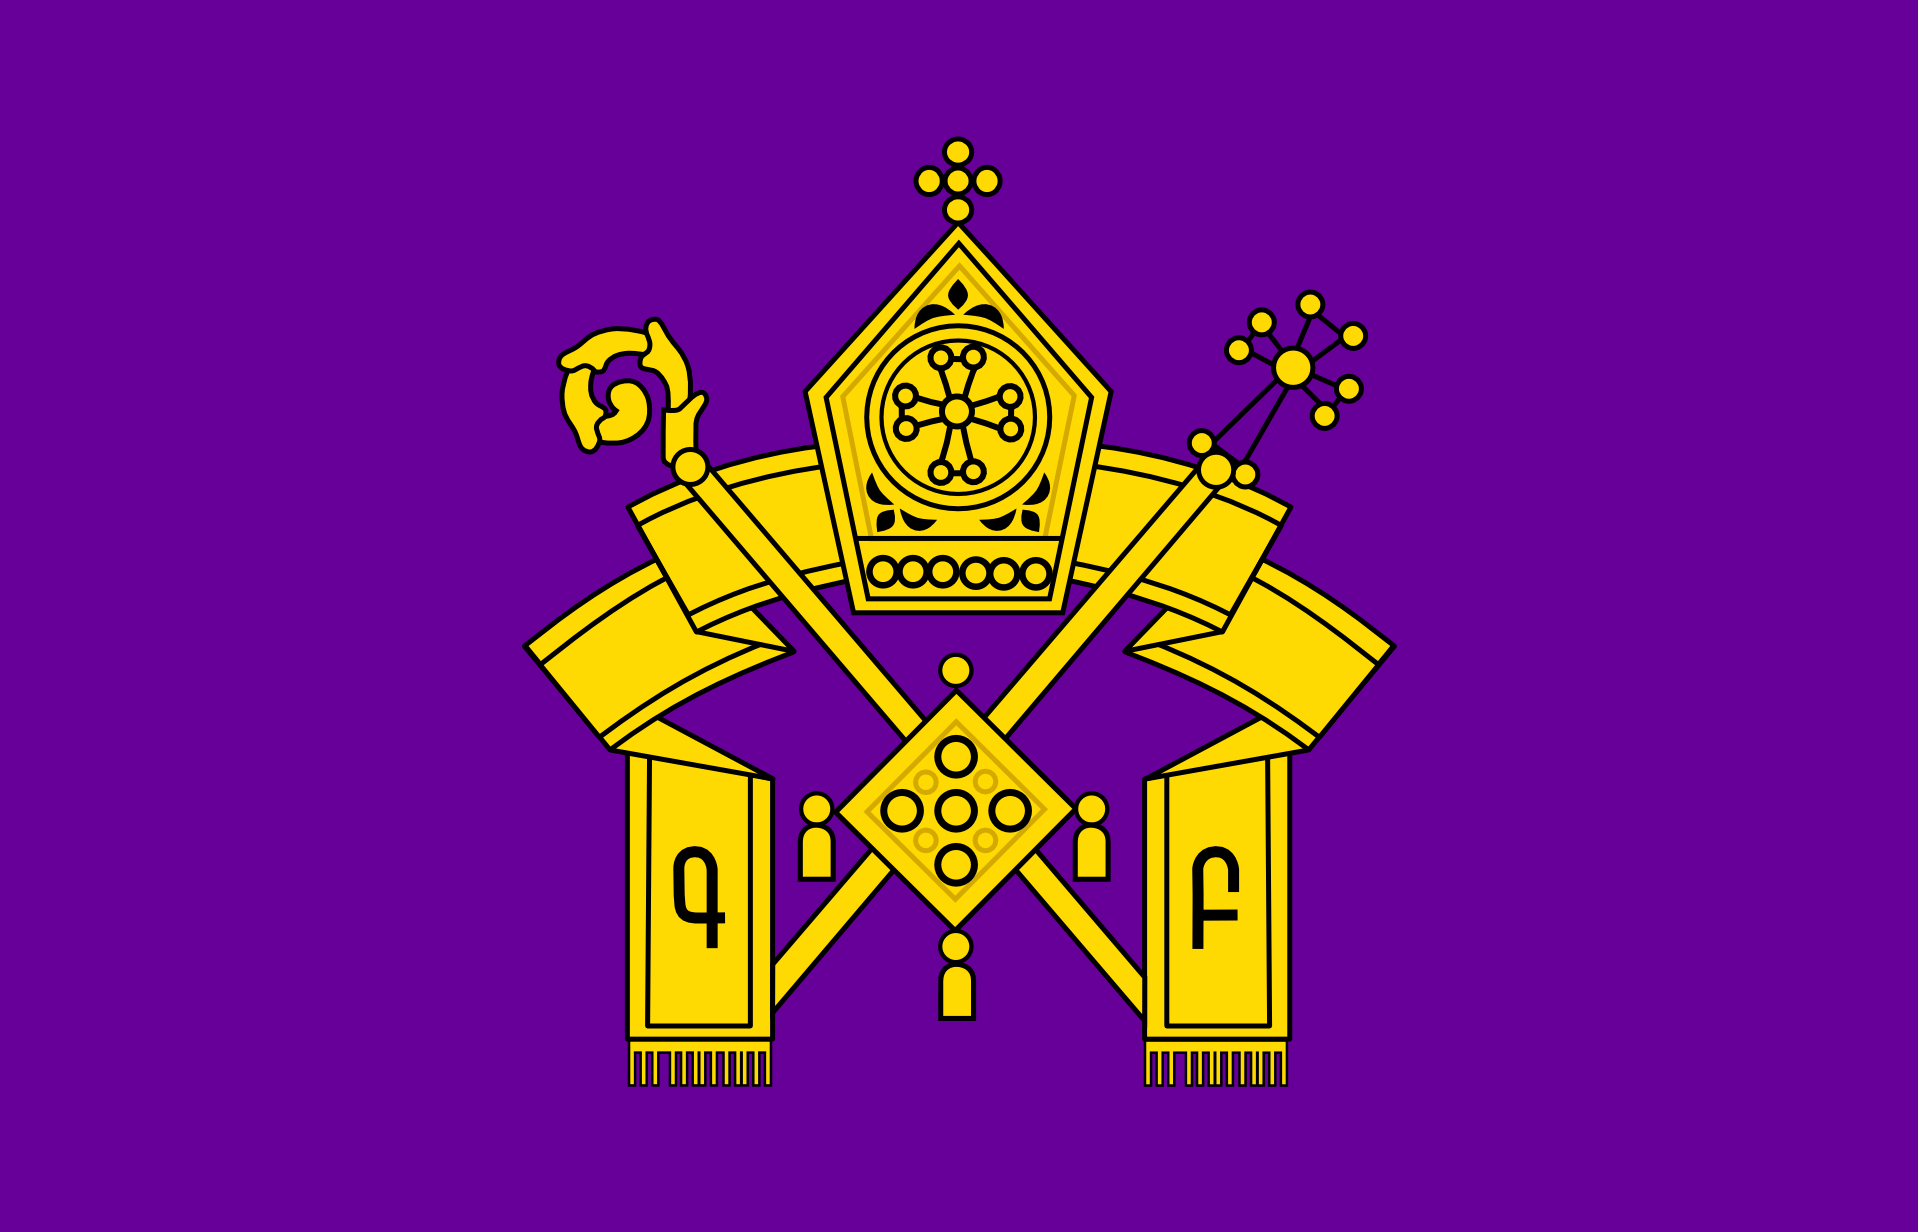 File:Armenian Apostolic Church logo.png.